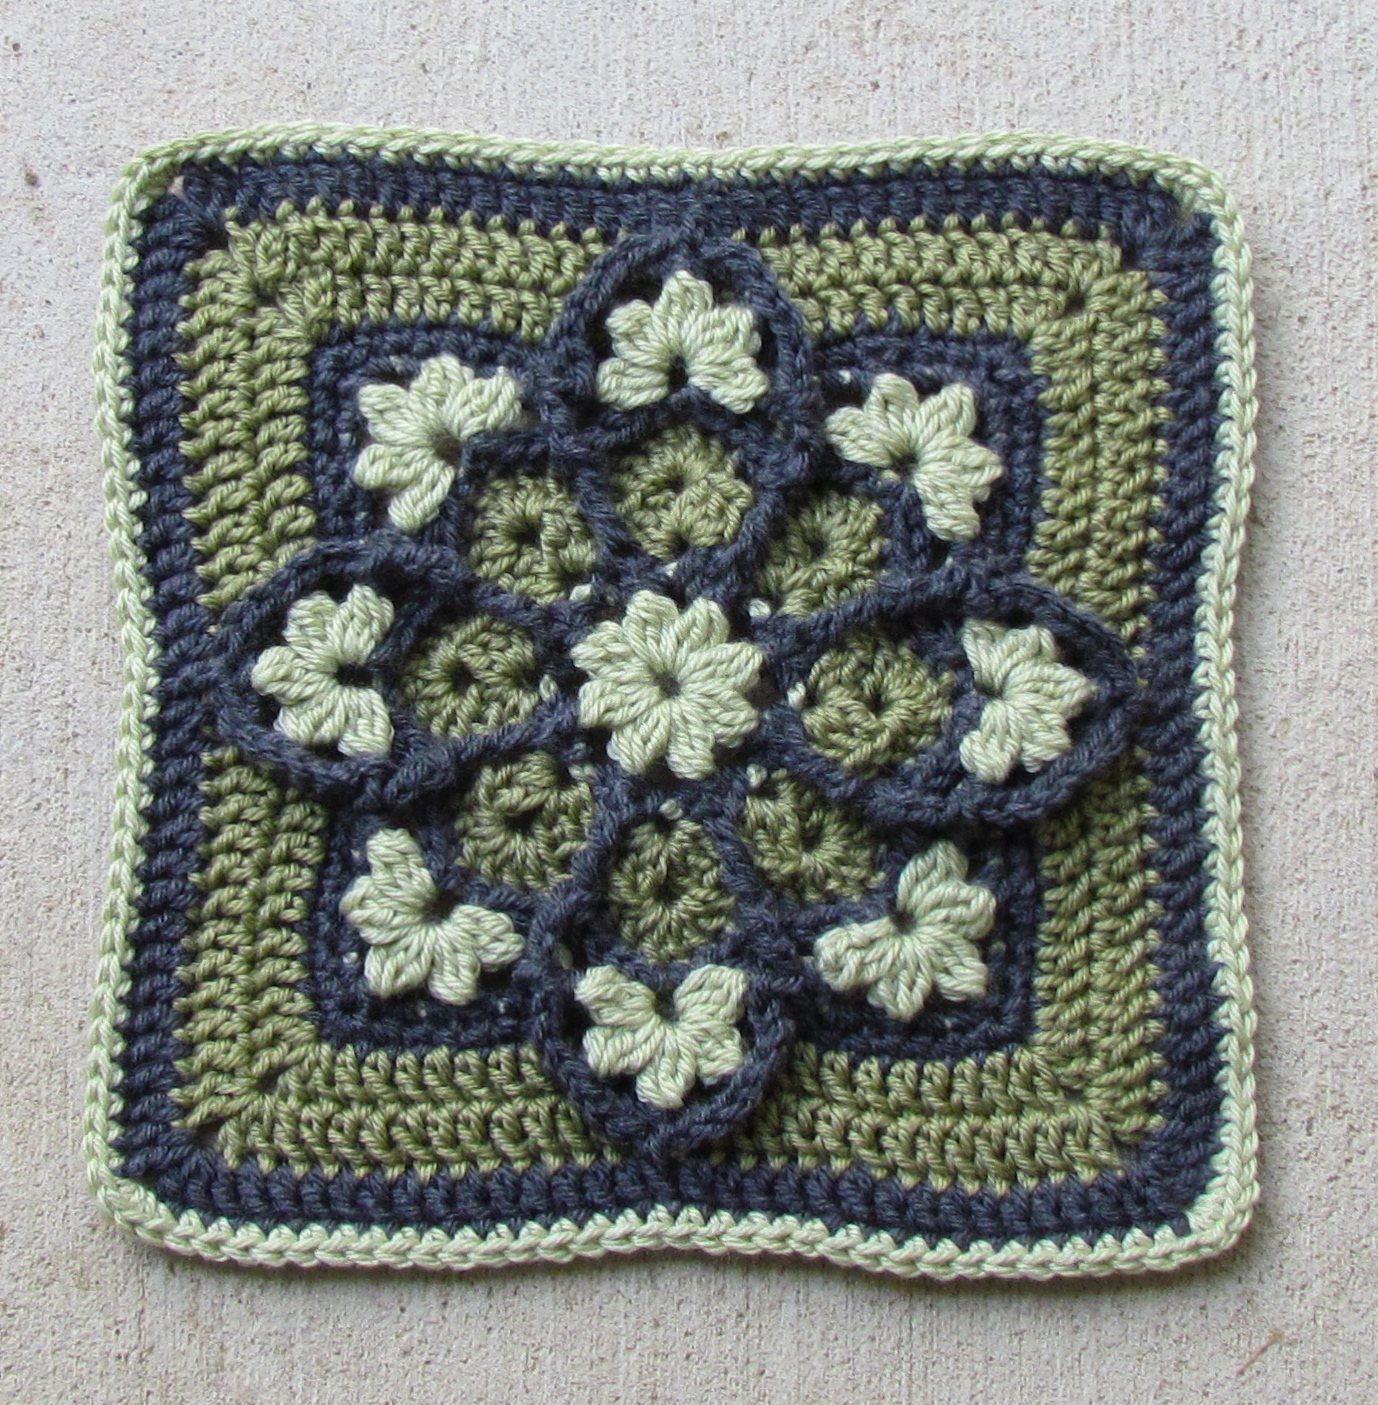 Beautiful Stained Glass Afghan Square - Ambassador Crochet